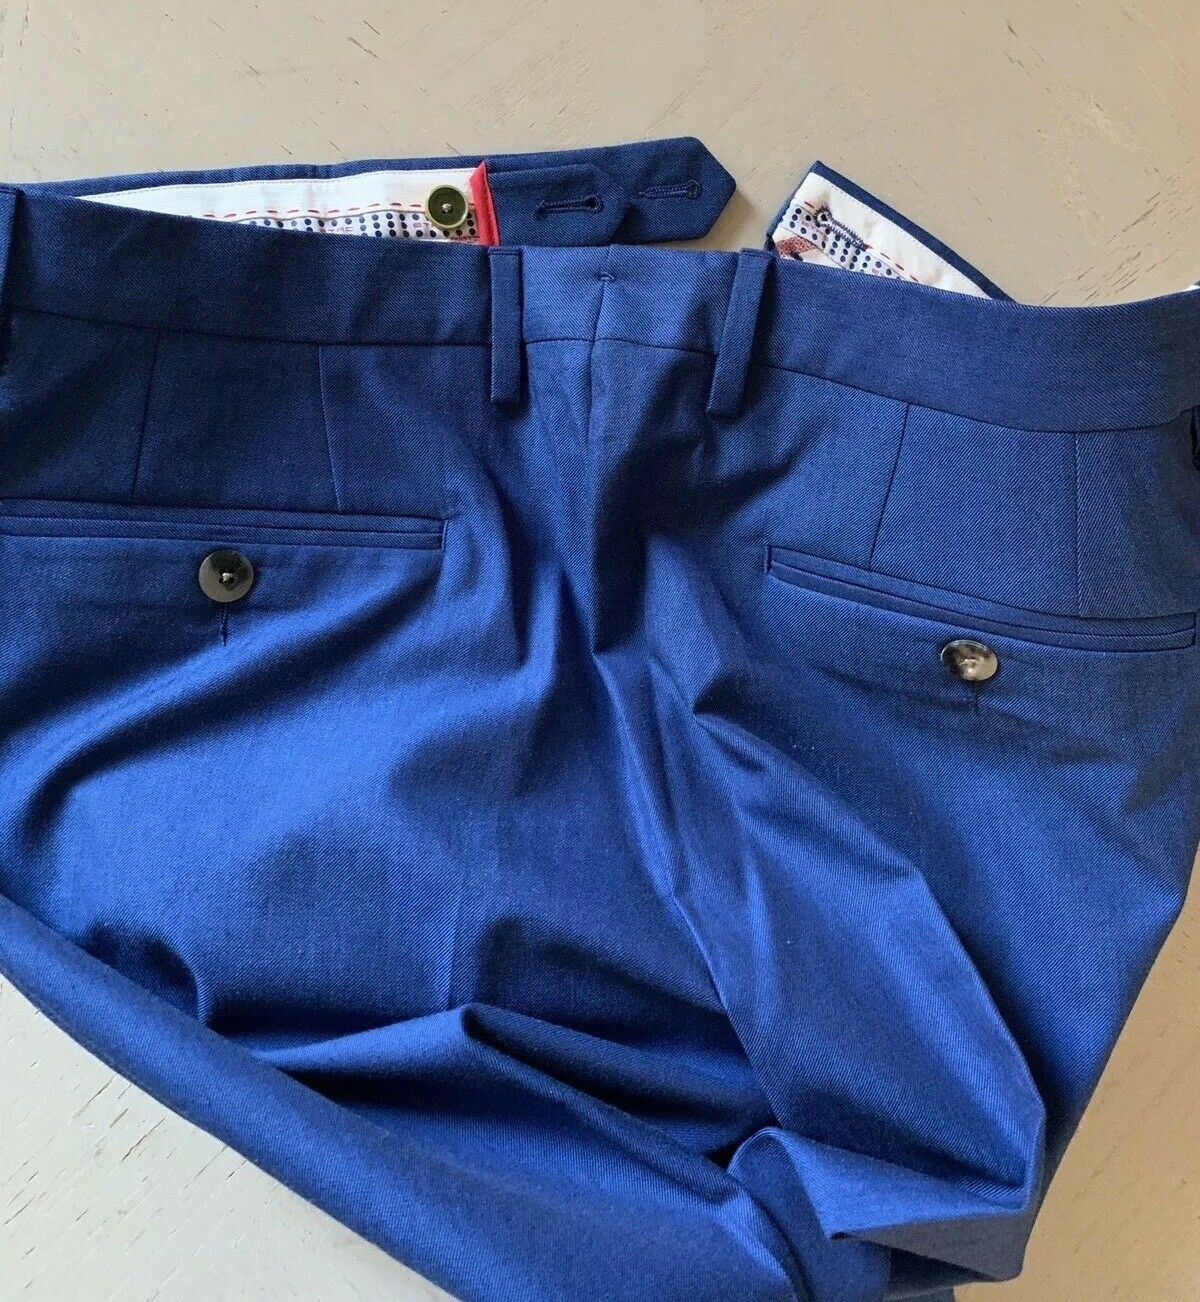 NWT $350 ETRO Mens Dress Pants Blue 36 US ( 52 Eu ) Italy